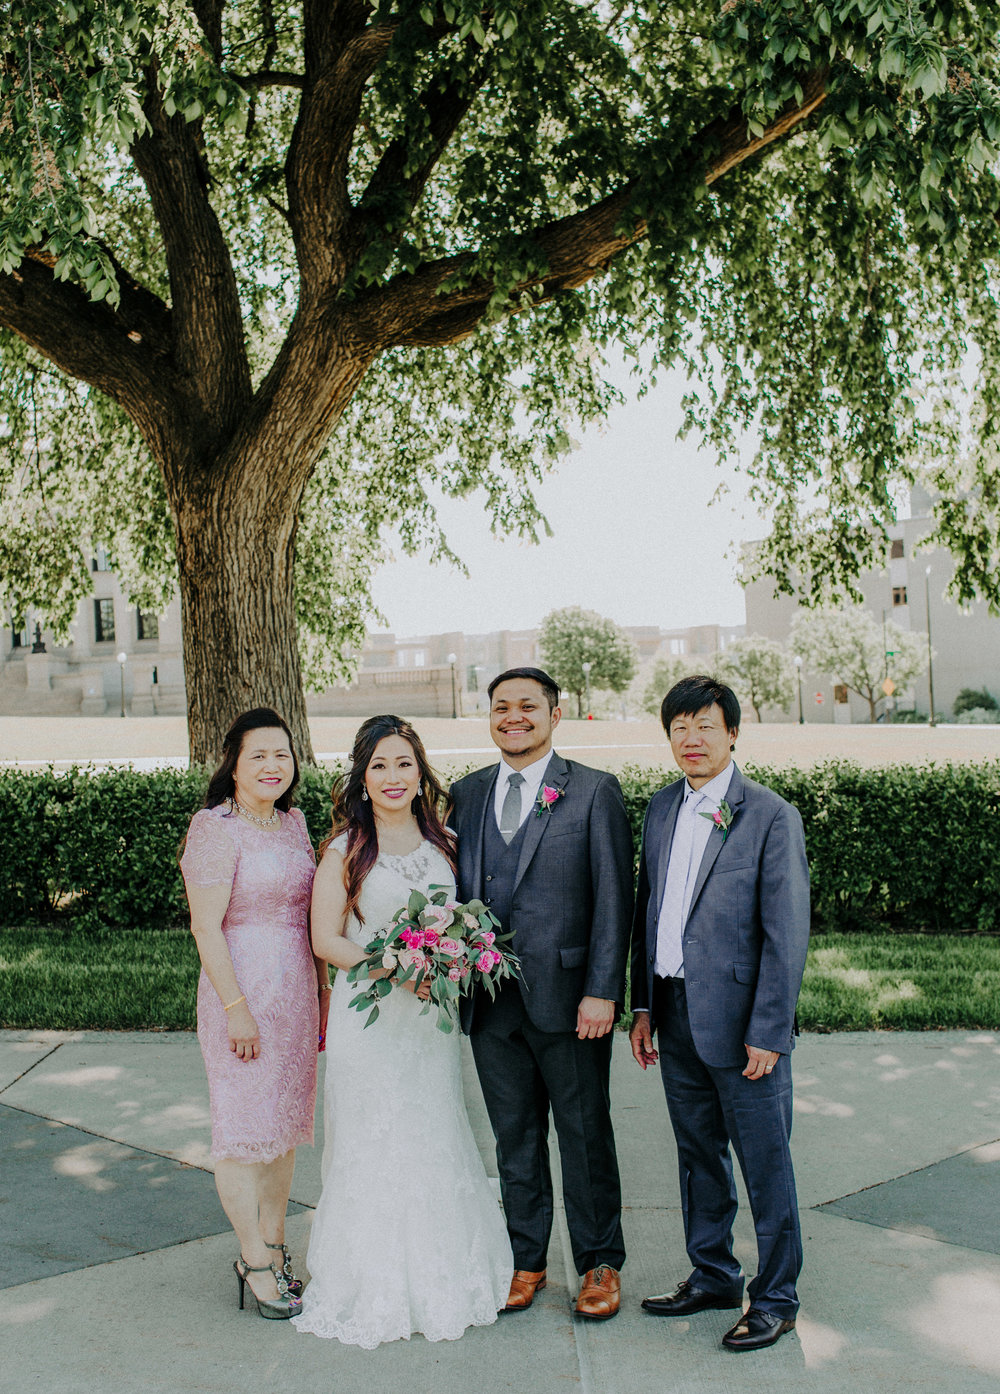 Flower+Xub, Their Wedding Day-127.jpg